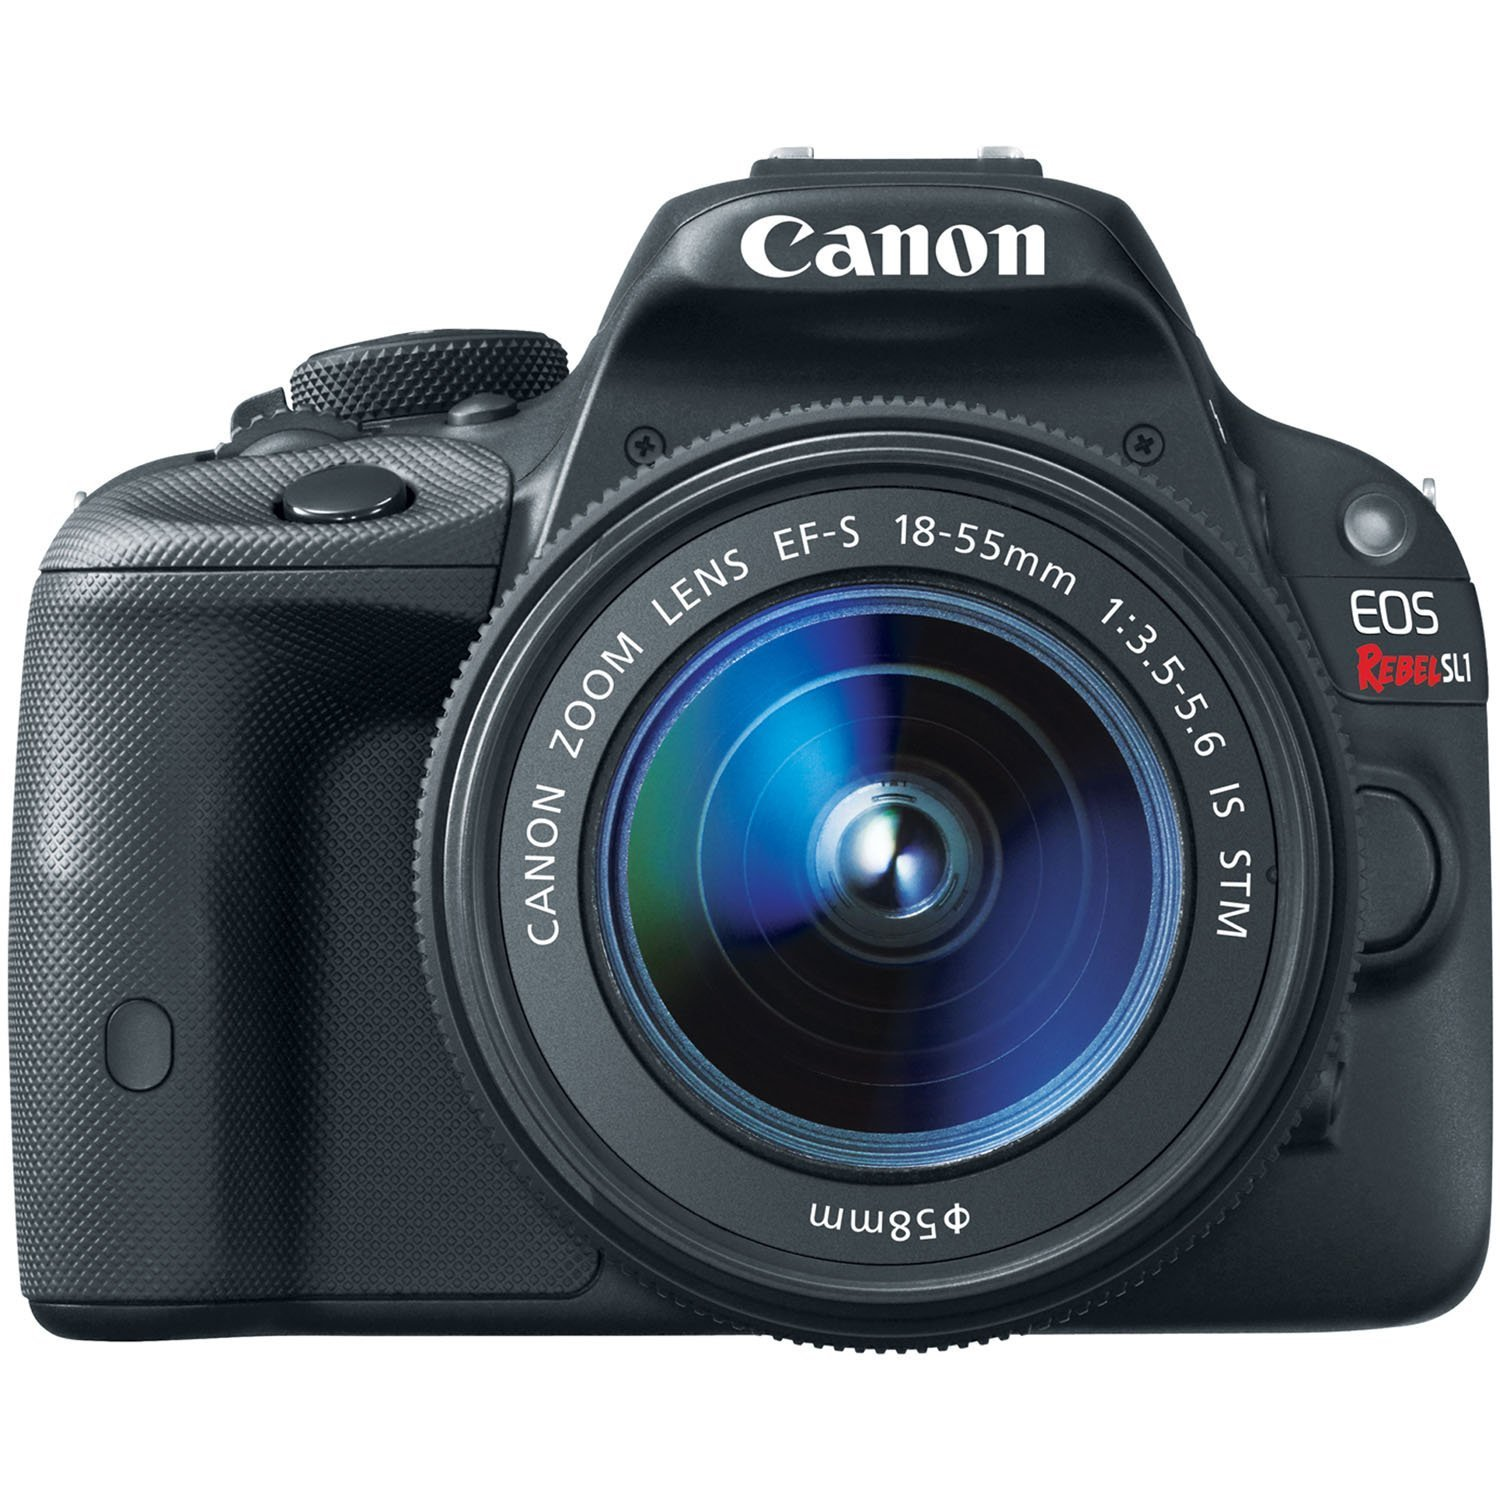 Canon EOS 100D, best camera for begineer